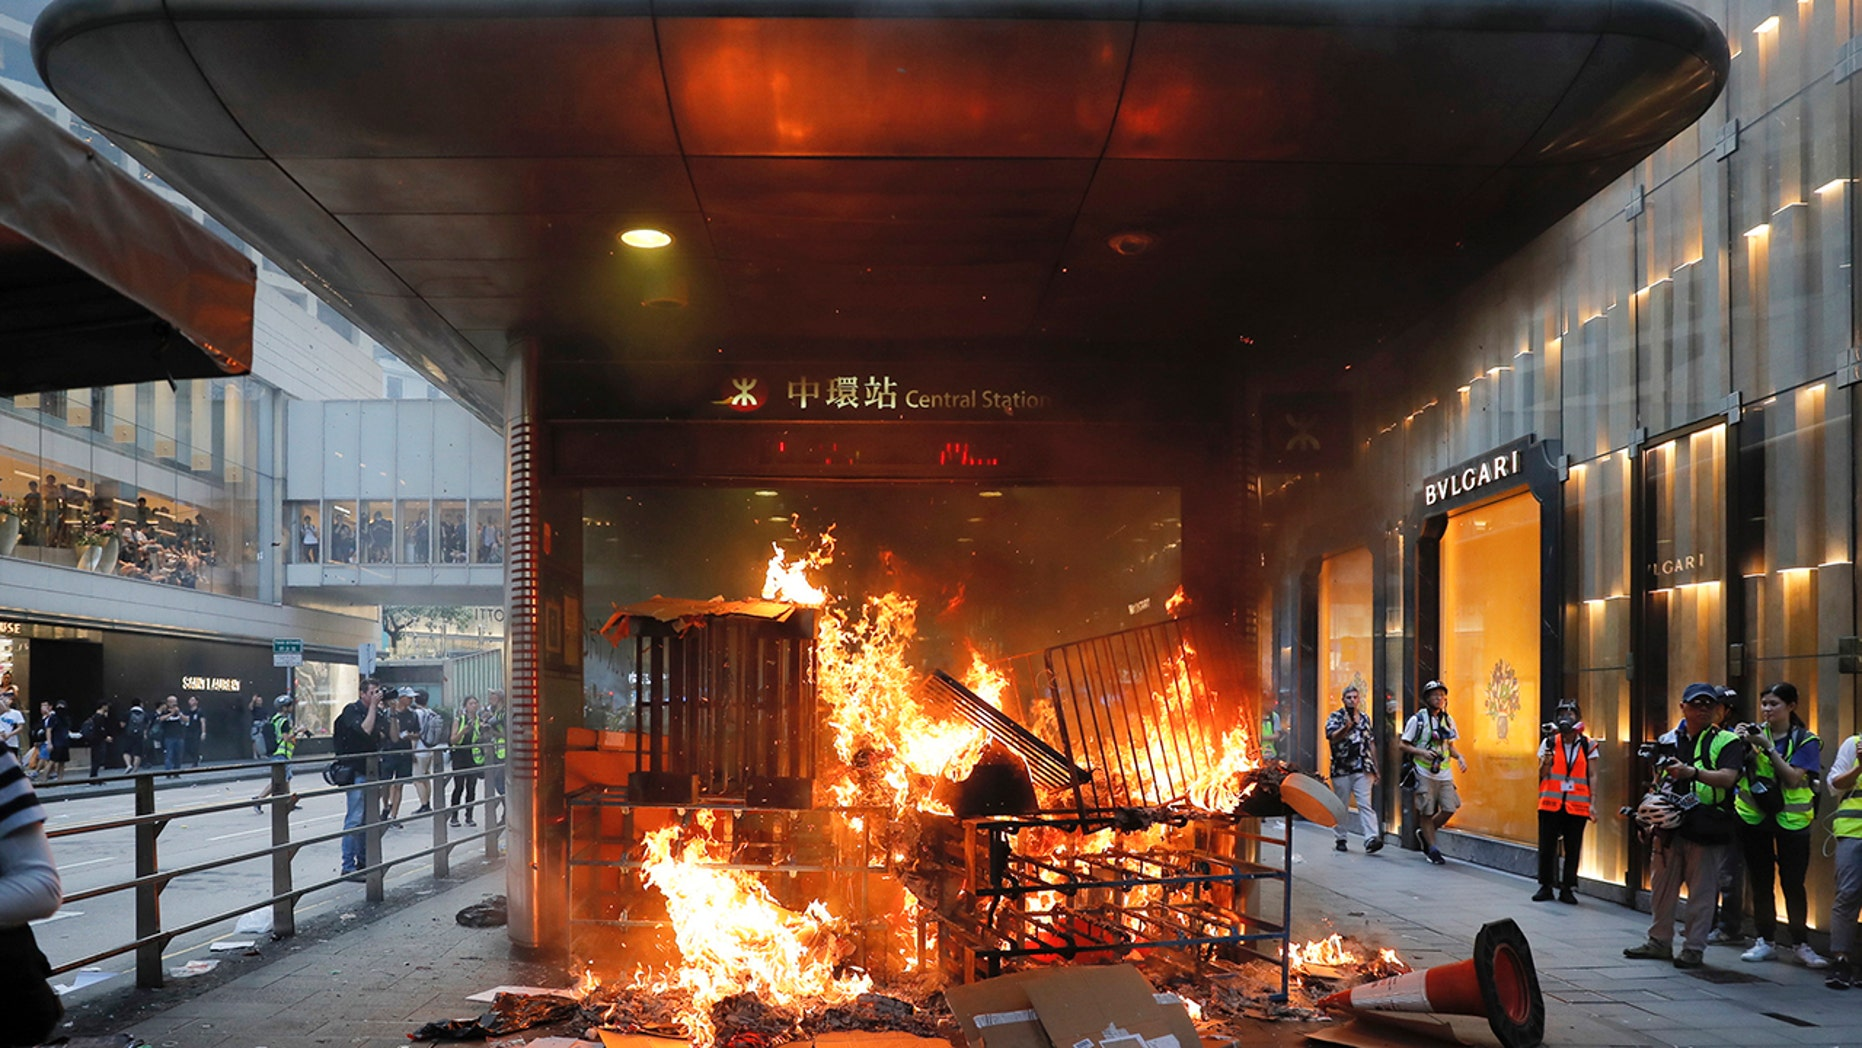 In this Sunday, Sept. 8, 2019, file photo, a fire set by protesters burns at an entrance to the Central MTR subway station in Hong Kong. Thousands of demonstrators participated in a peaceful march to the U.S. Consulate but later violence broke out in the business and retail but later after protesters vandalized a metro station and blocked traffic at a major thoroughfare, with several people detained. (AP Photo/Kin Cheung, File)